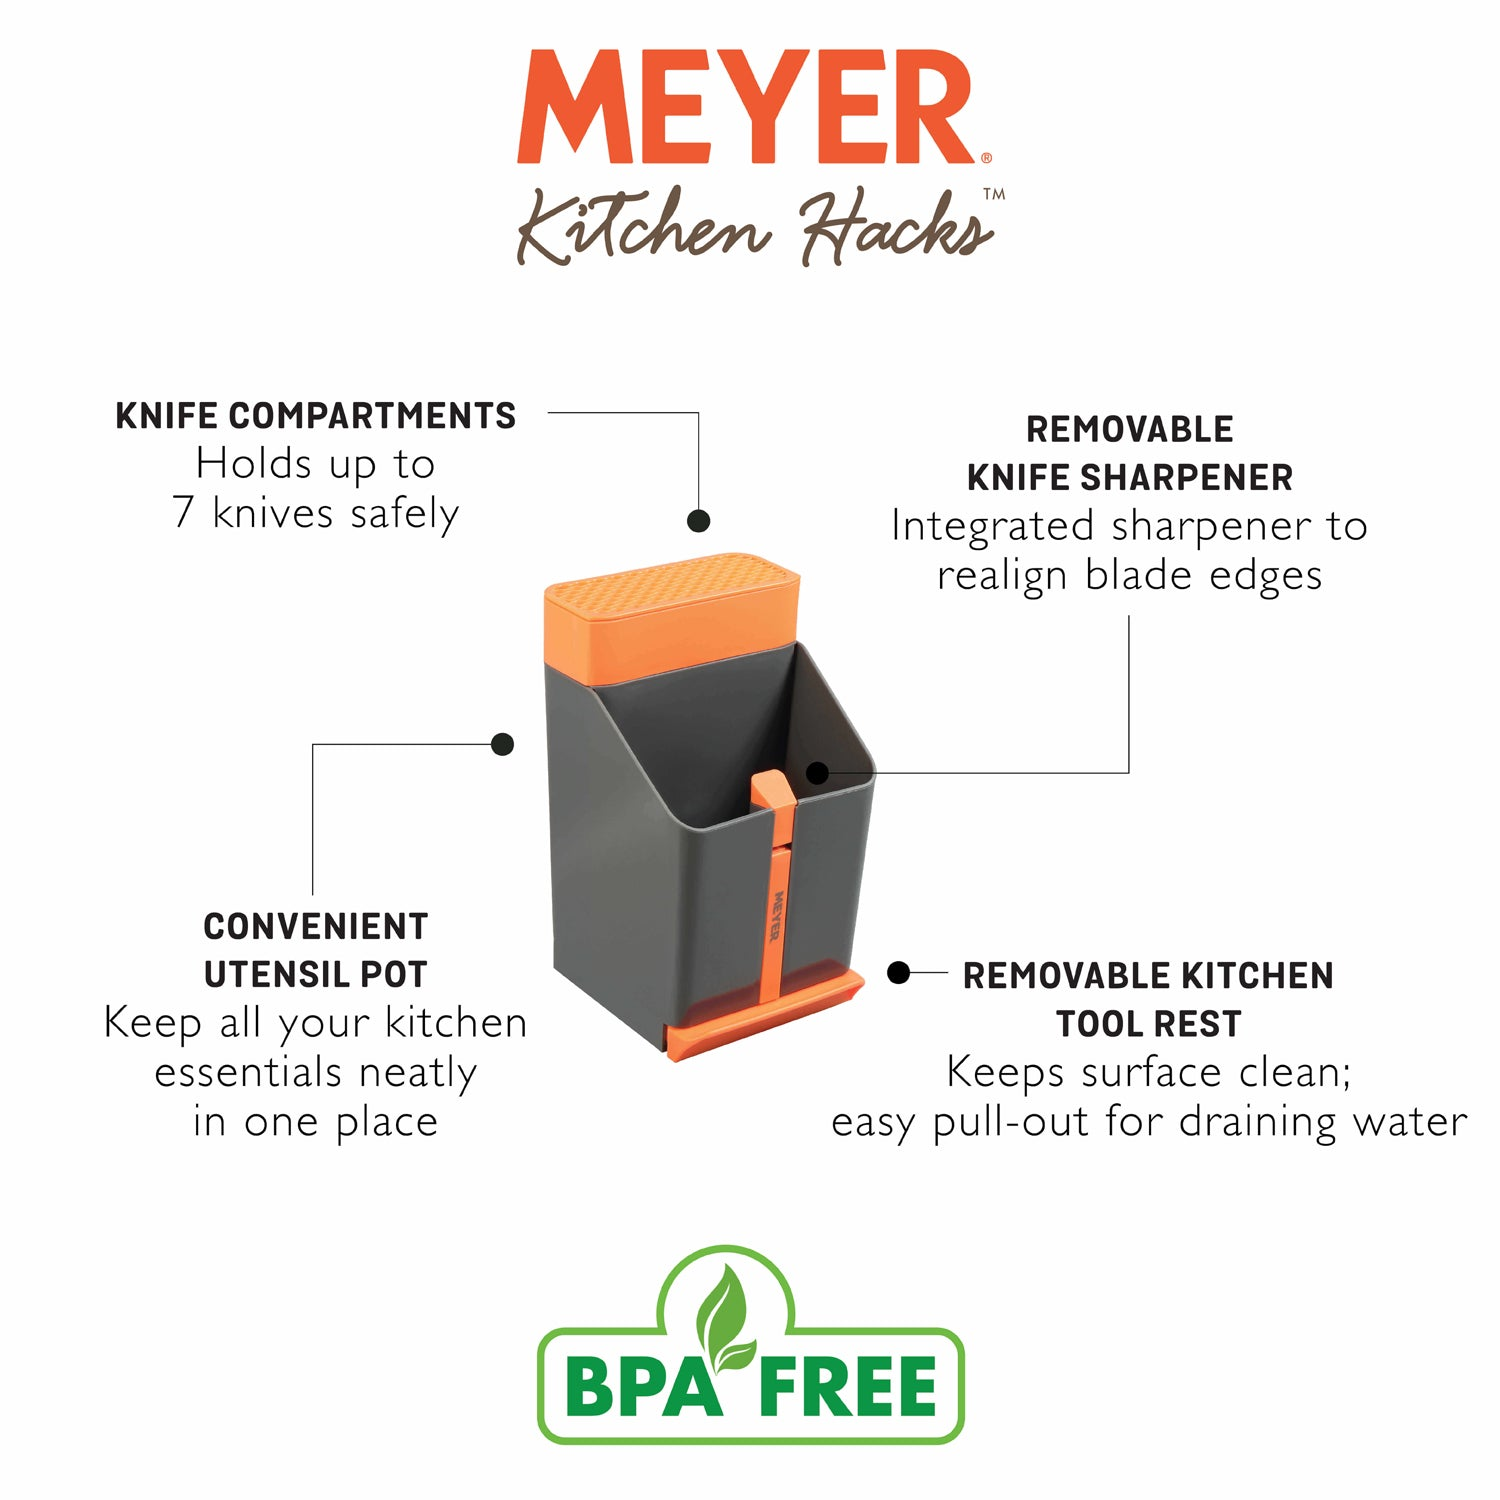 Meyer Kitchen Hacks Knife & Utensil Station - Pots and Pans